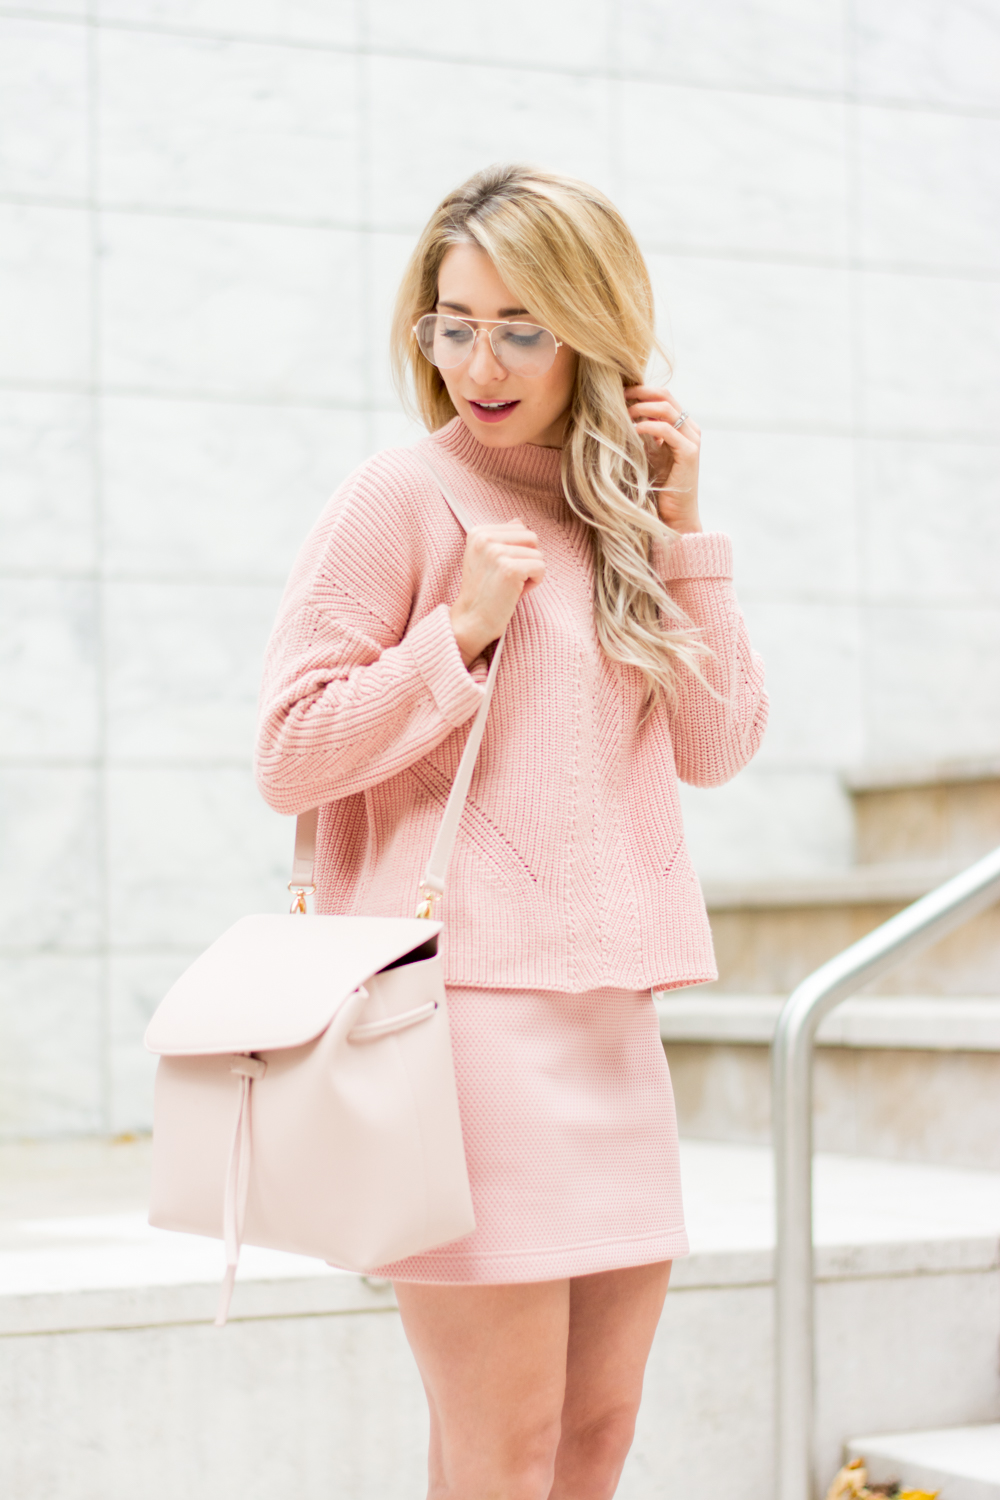 0c964-joelle-anello-la-petite-noob-pink-sweater-pink-skirt-blush-topshop-outfit.jpg